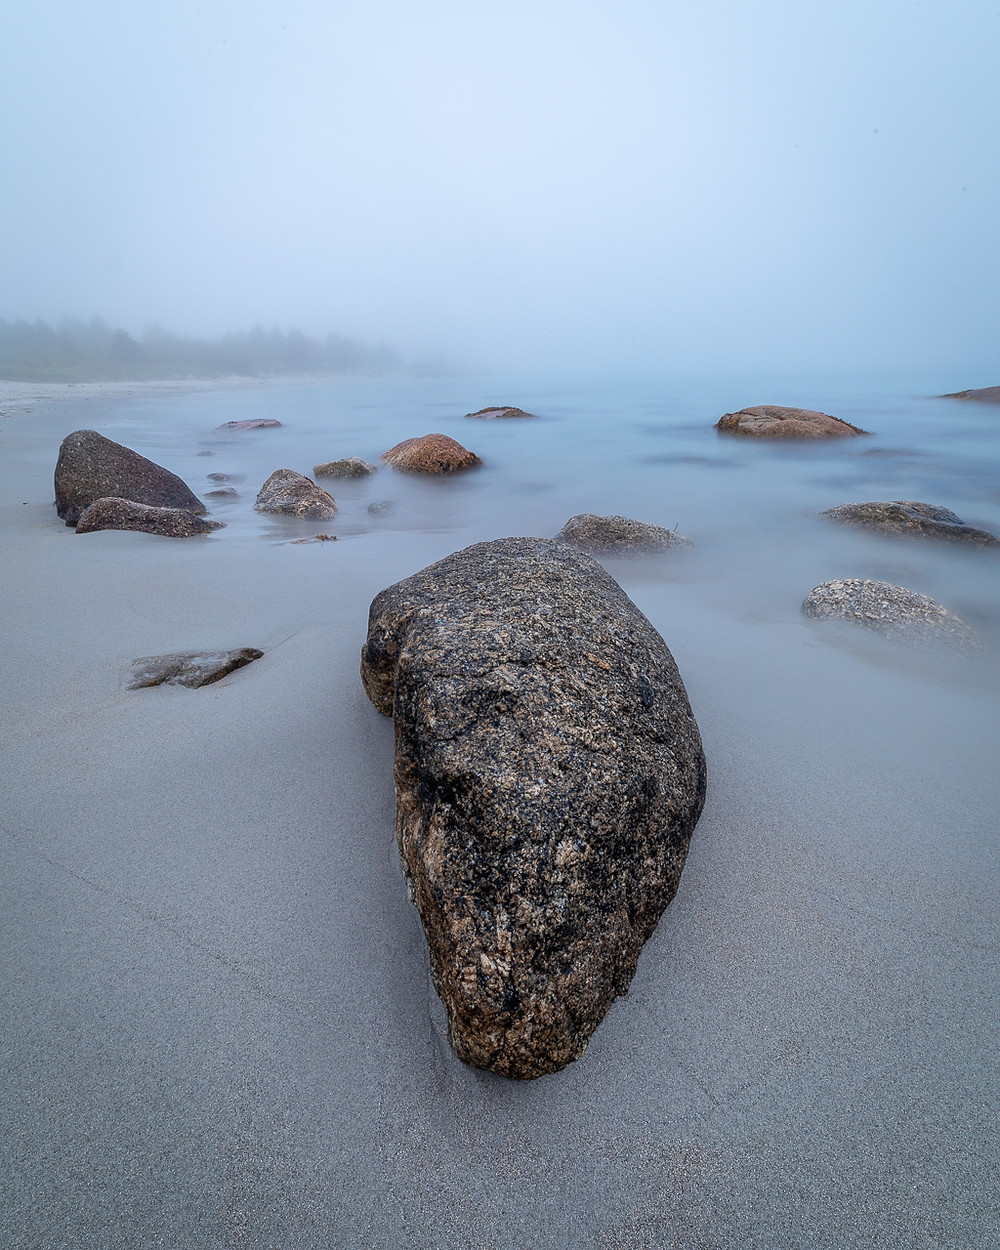 A rock in the foreground on a white sandy beach, with thick fog.